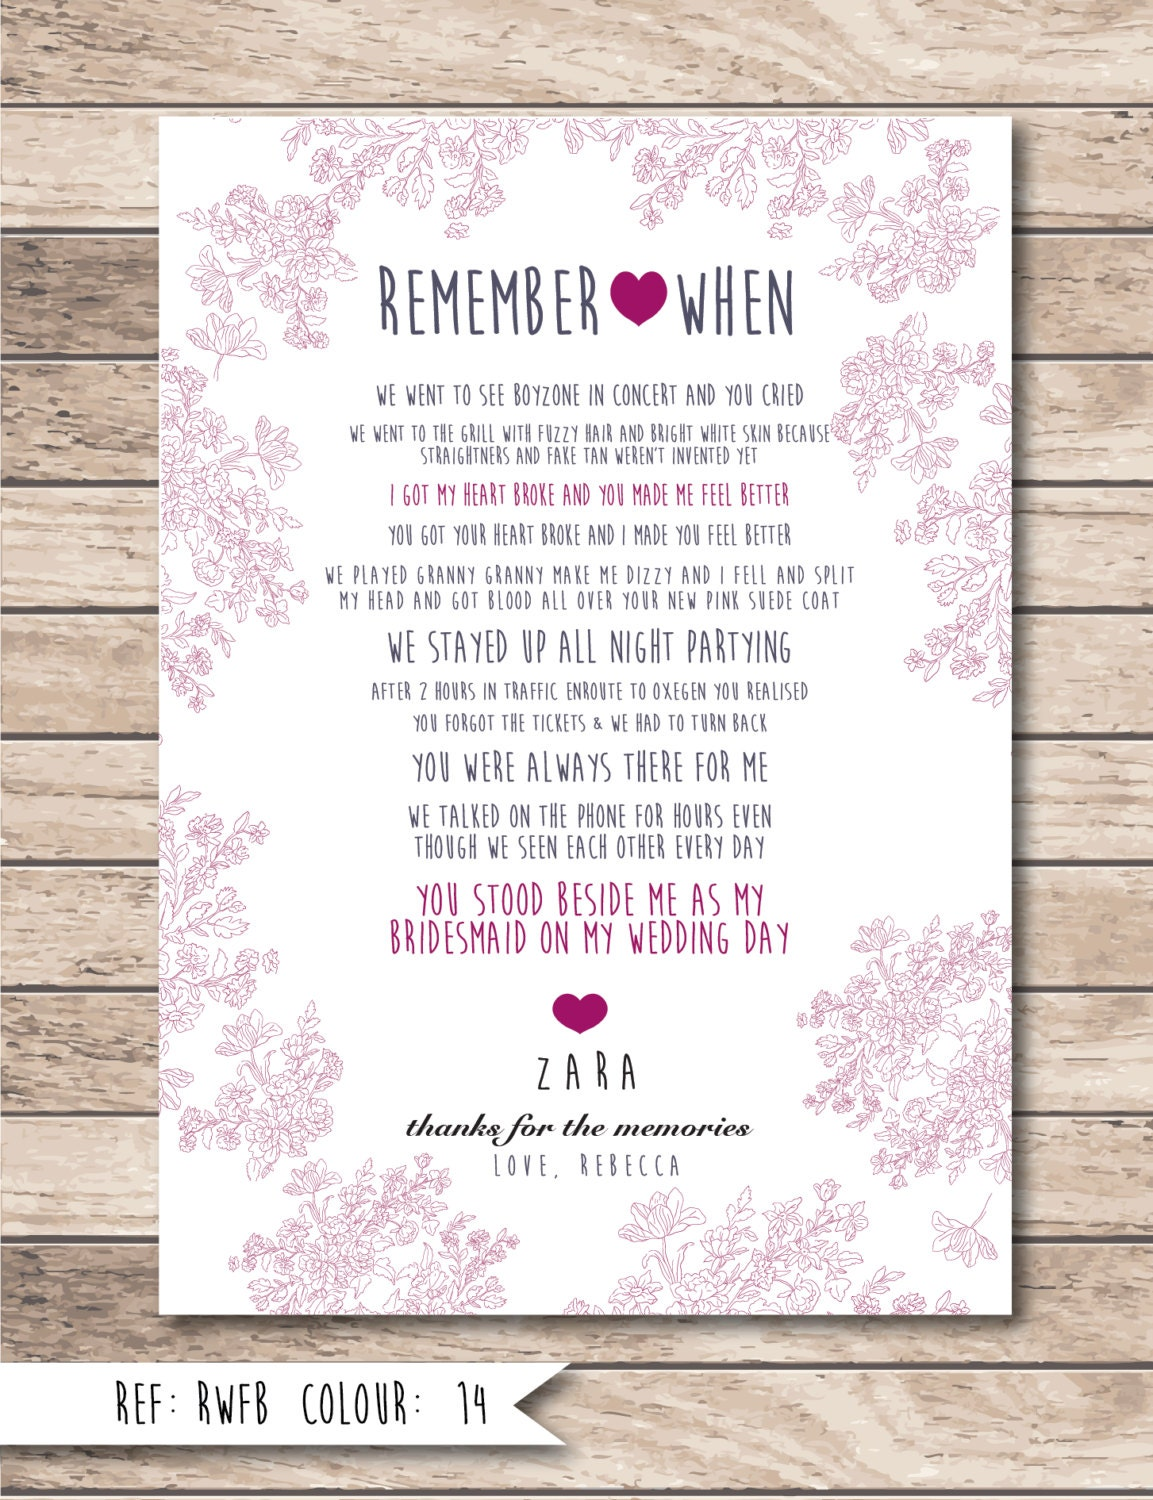 Wedding Gift For Bride From Best Friend : ... When - Personalised Bridesmaid, Birthday, Best Friend, Wedding Gift